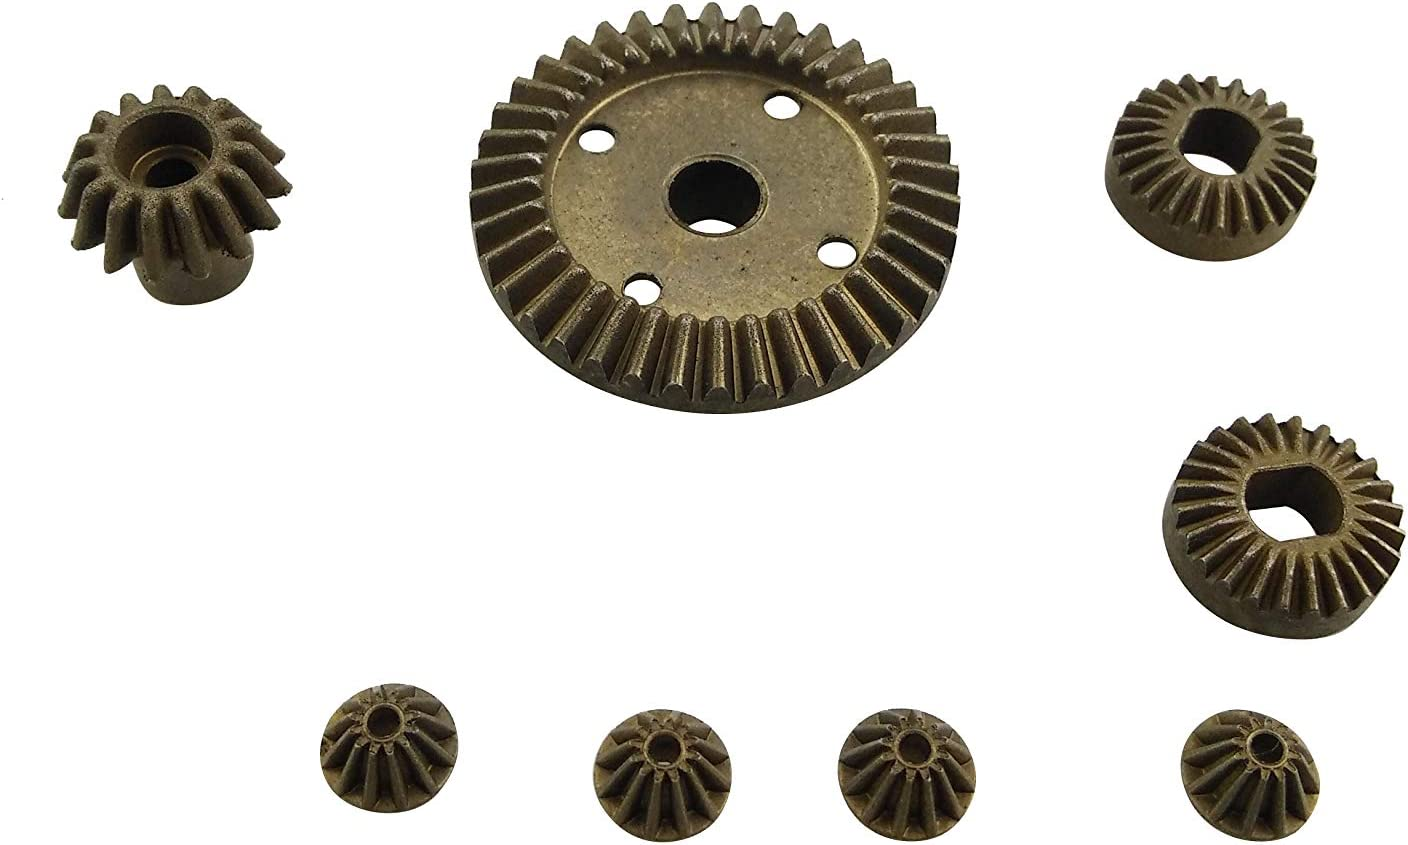 Fytoo 12T 15T 24T 38T Metal Front and Rear Differential//Plastic Gear Accessories for 1:18 Wltoys A949 A959 A969 A979 184012 RC Remote Control Car Spare Parts